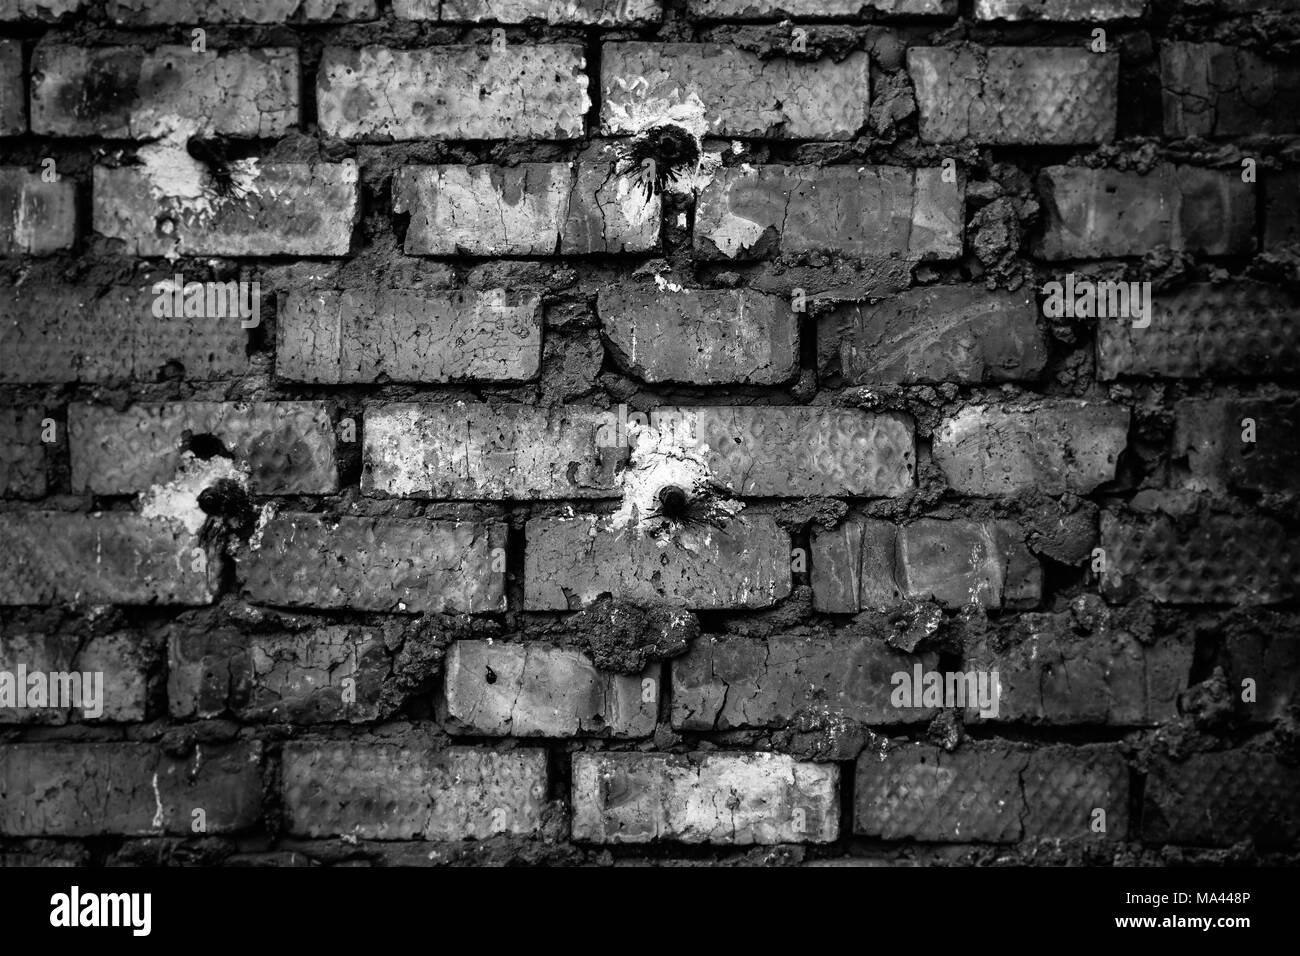 The old red brick wall. Background and texture. Black and white photo - Stock Image